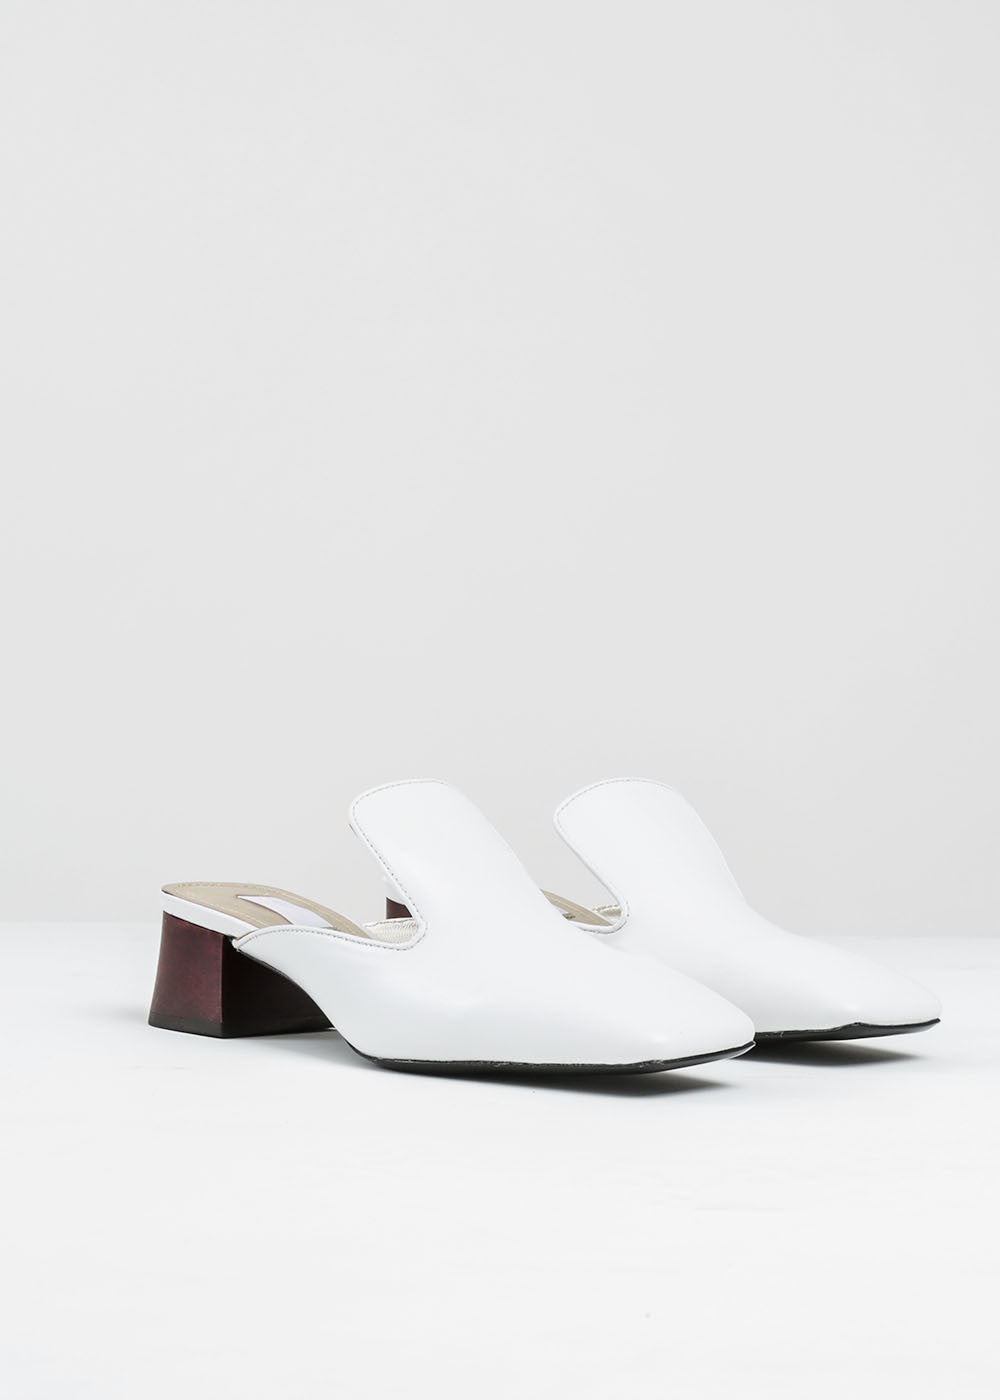 Suzanne Rae White Leather Mule — New Classics Studios